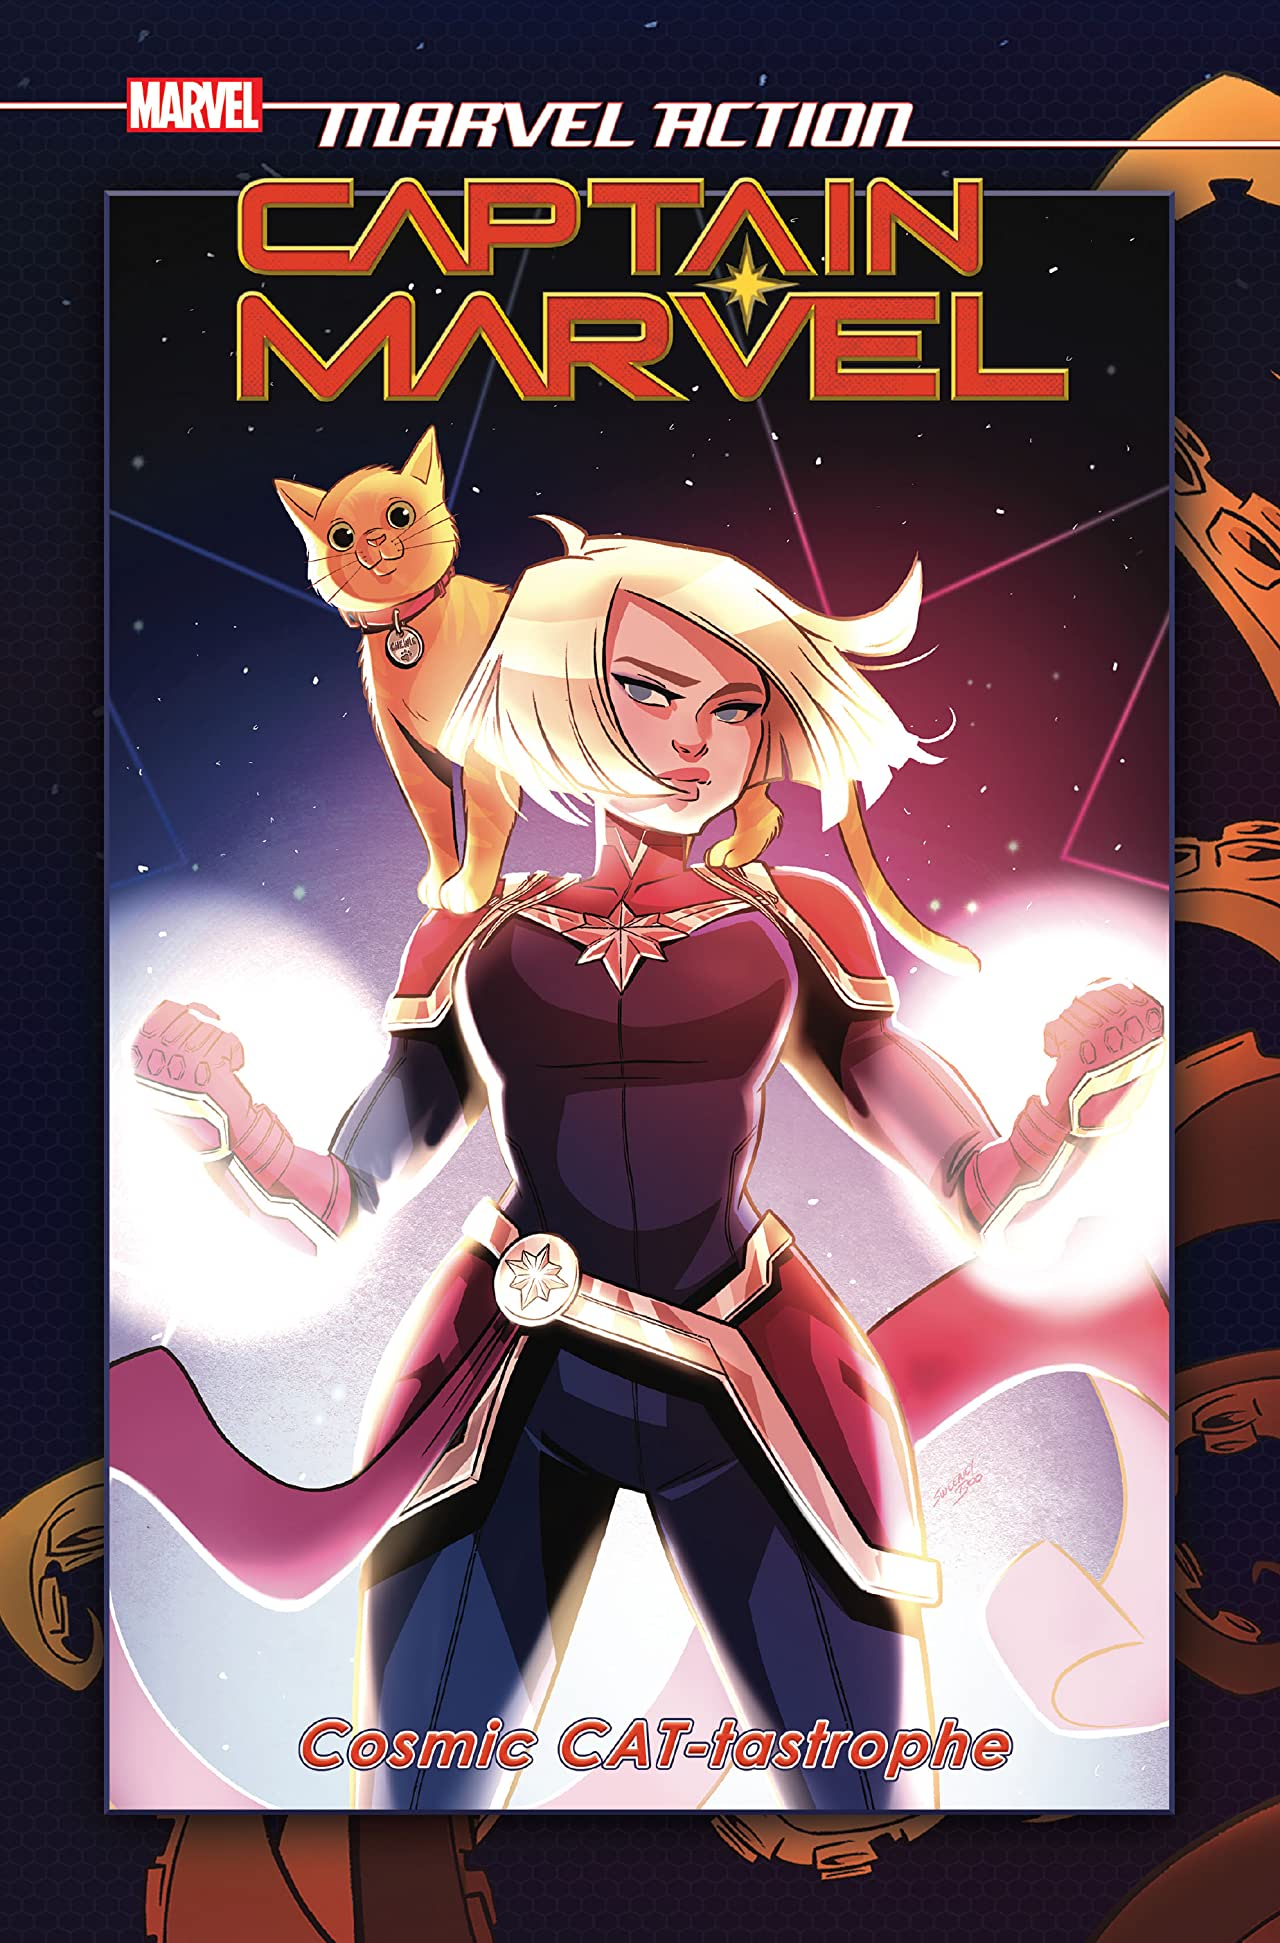 Marvel Action Captain Marvel Tome 1: Cat-Tastrophe